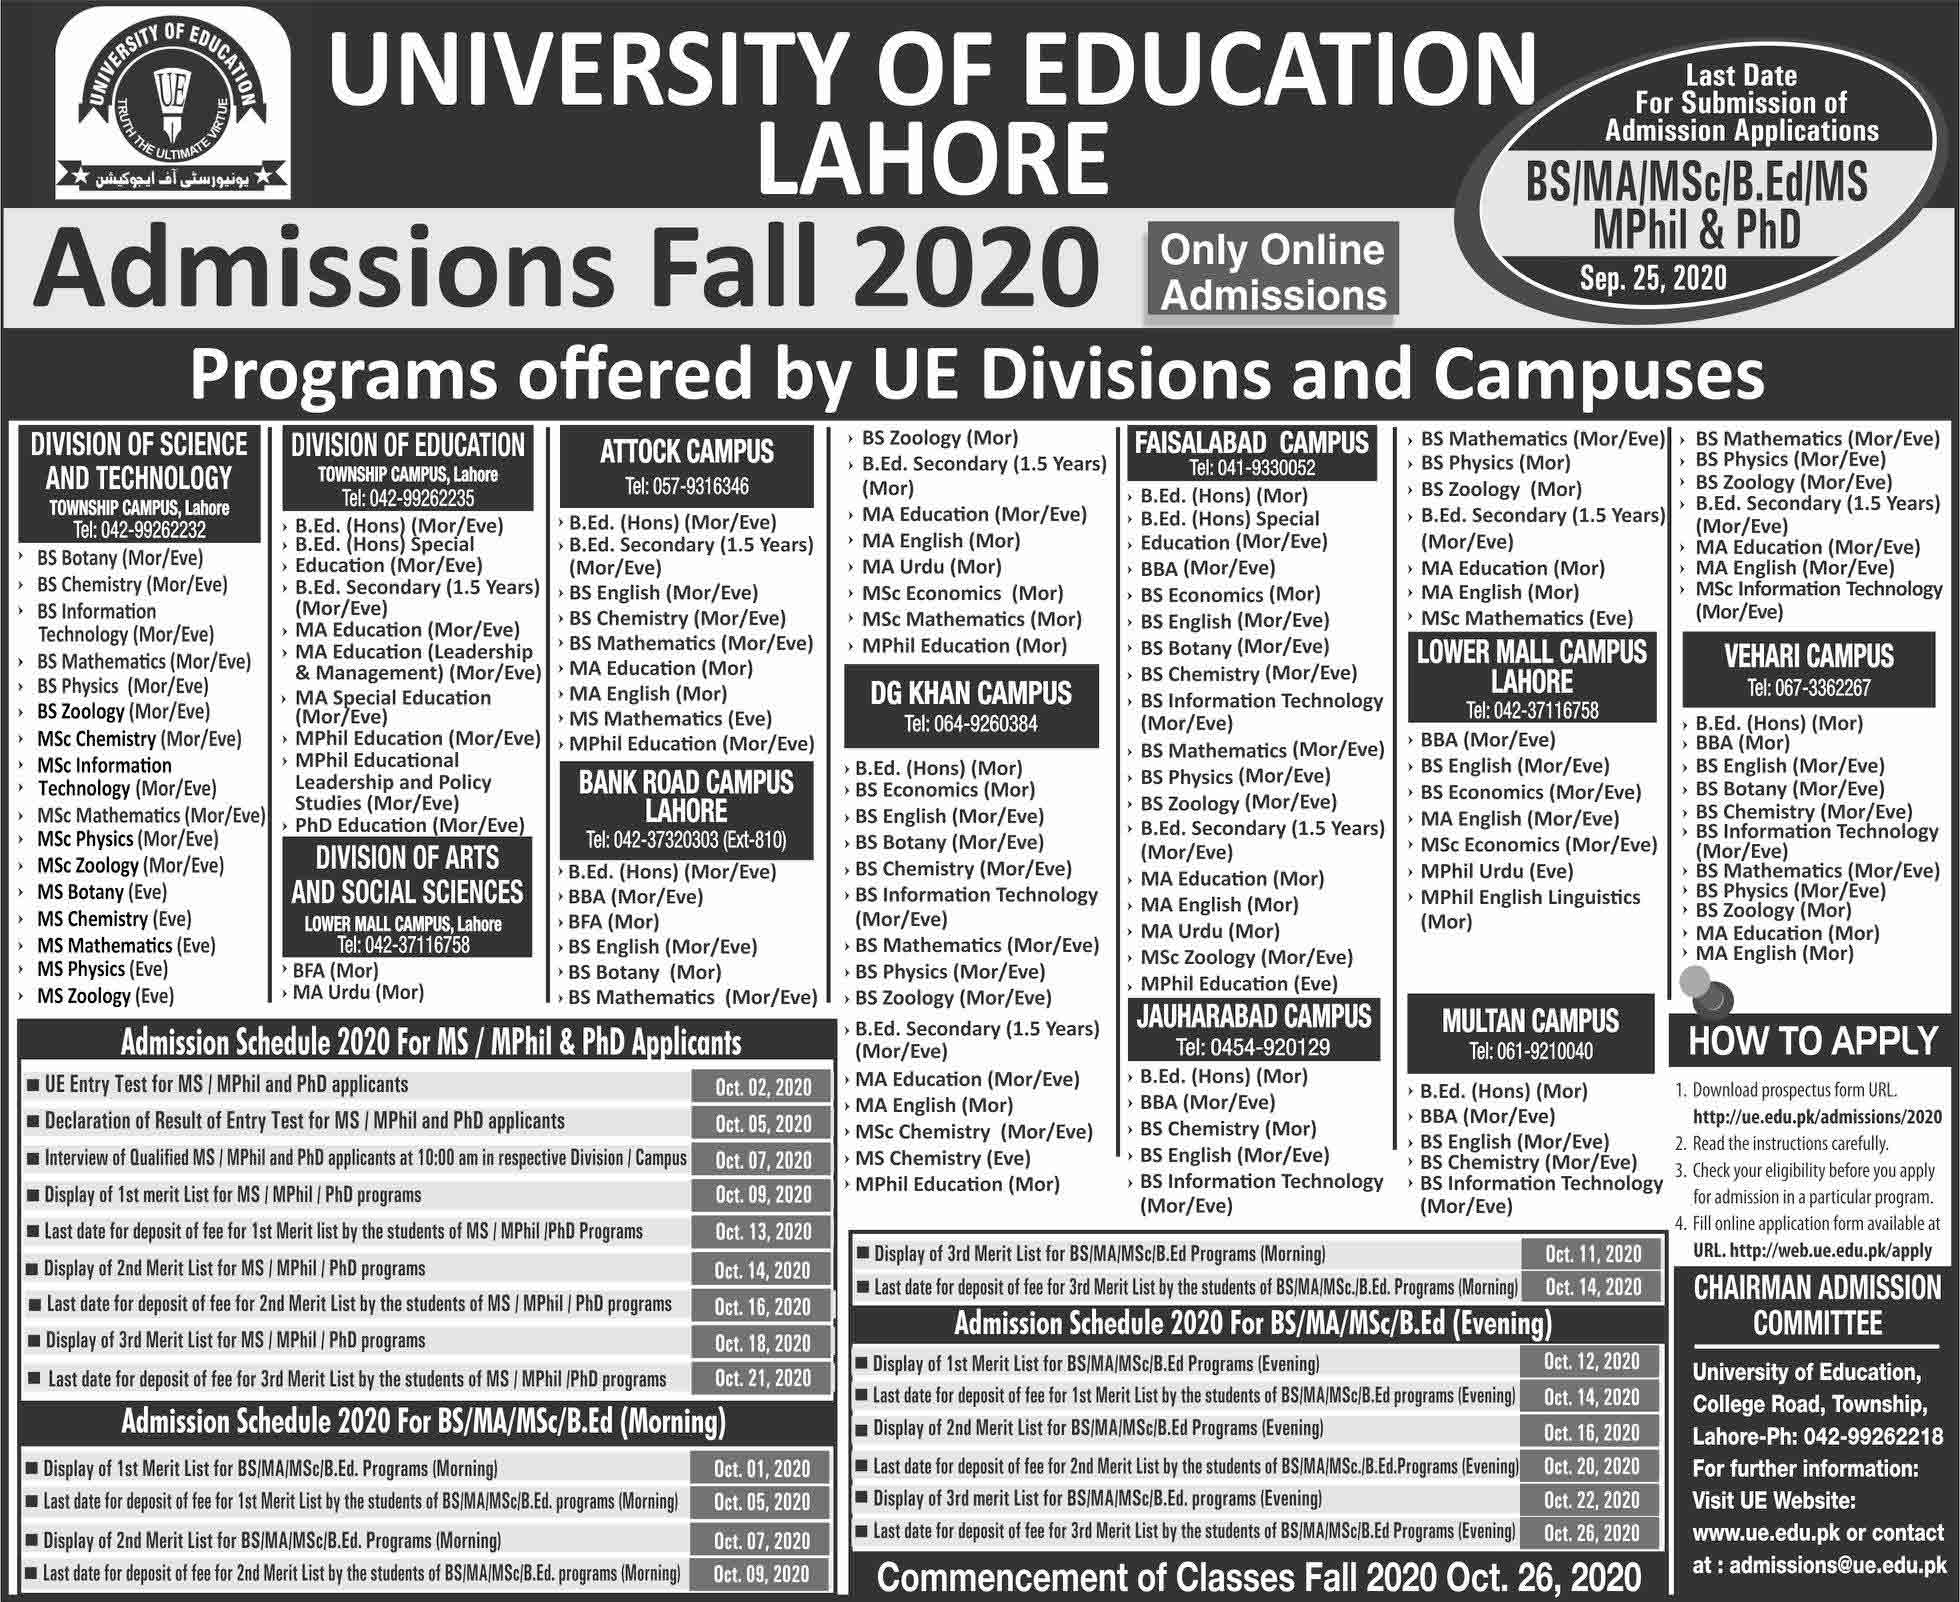 University-of-Education-Admissions-2020